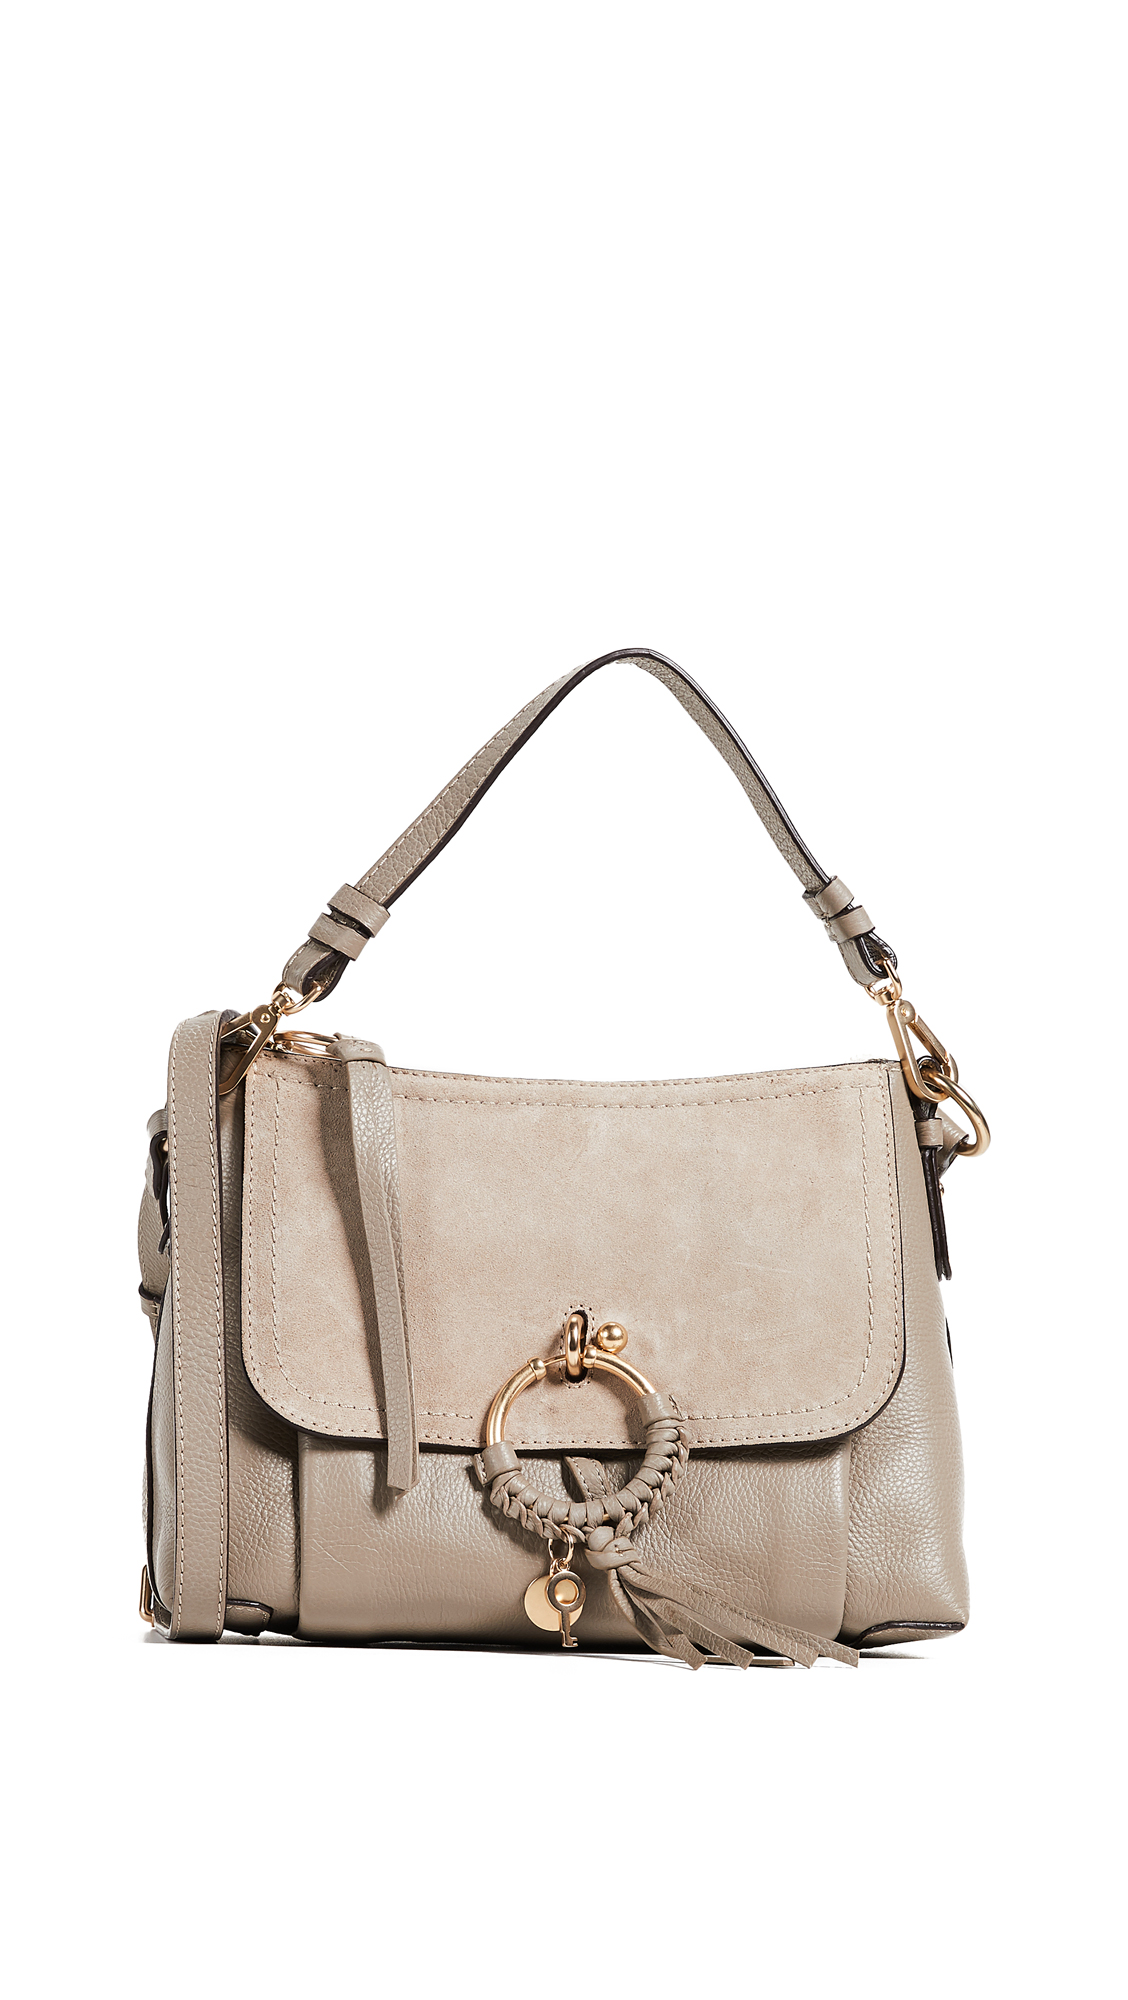 Joan Medium Suede-Paneled Textured-Leather Shoulder Bag in Gray